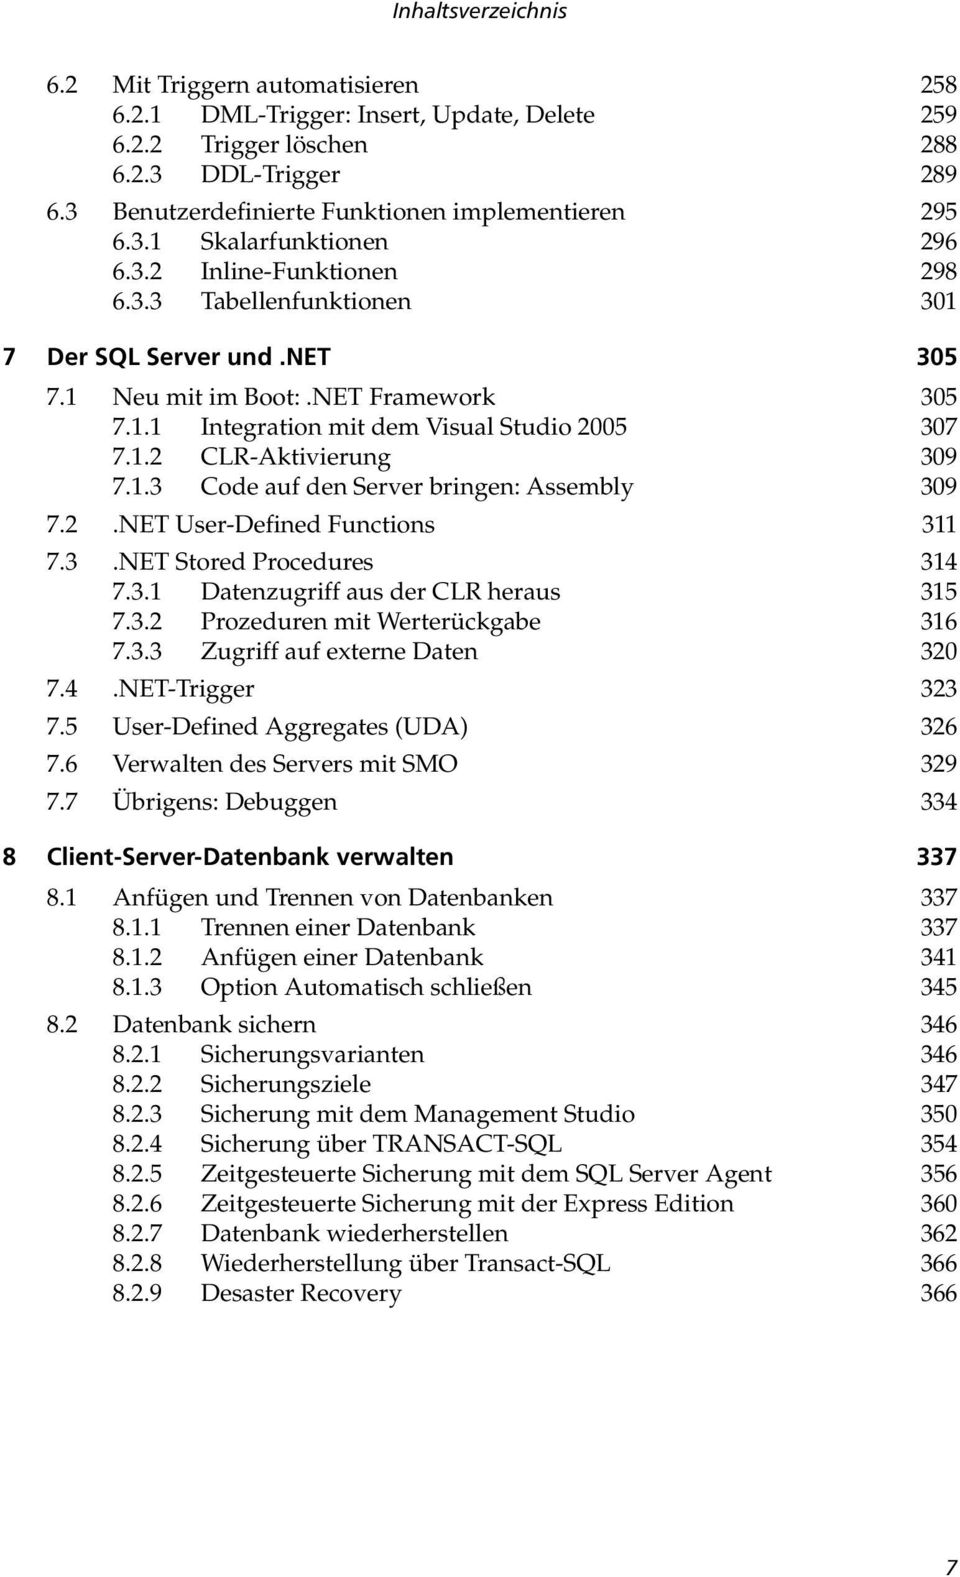 NET Framework 305 7.1.1 Integration mit dem Visual Studio 2005 307 7.1.2 CLR-Aktivierung 309 7.1.3 Code auf den Server bringen: Assembly 309 7.2.NET User-Defined Functions 311 7.3.NET Stored Procedures 314 7.